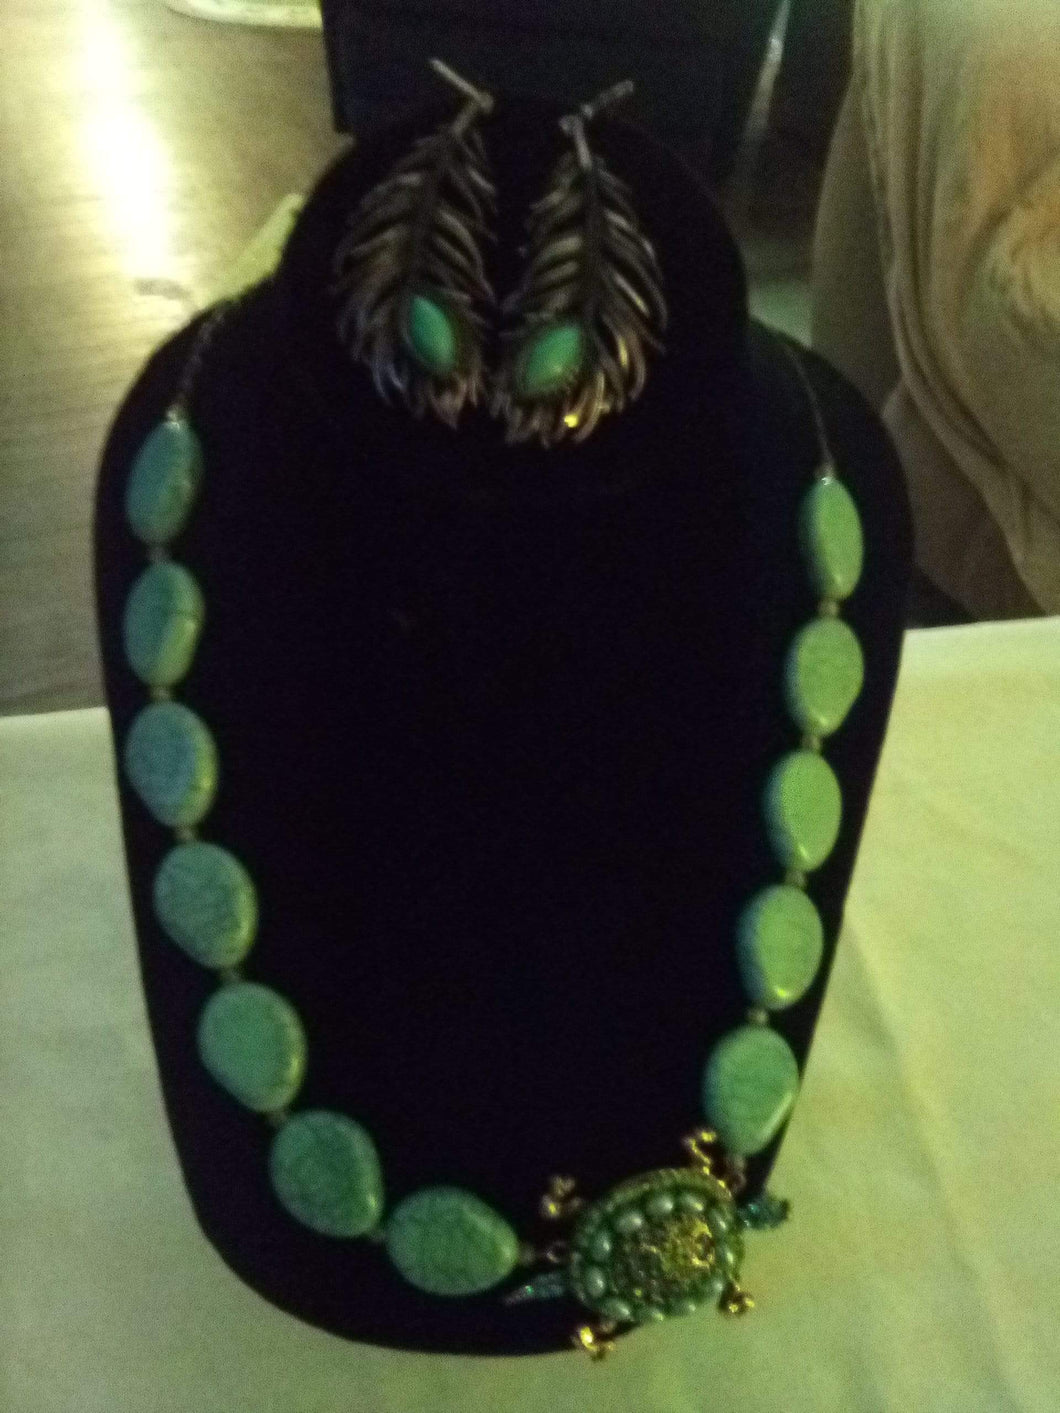 Turquoise necklace with earrings - B&P'sringsnthings